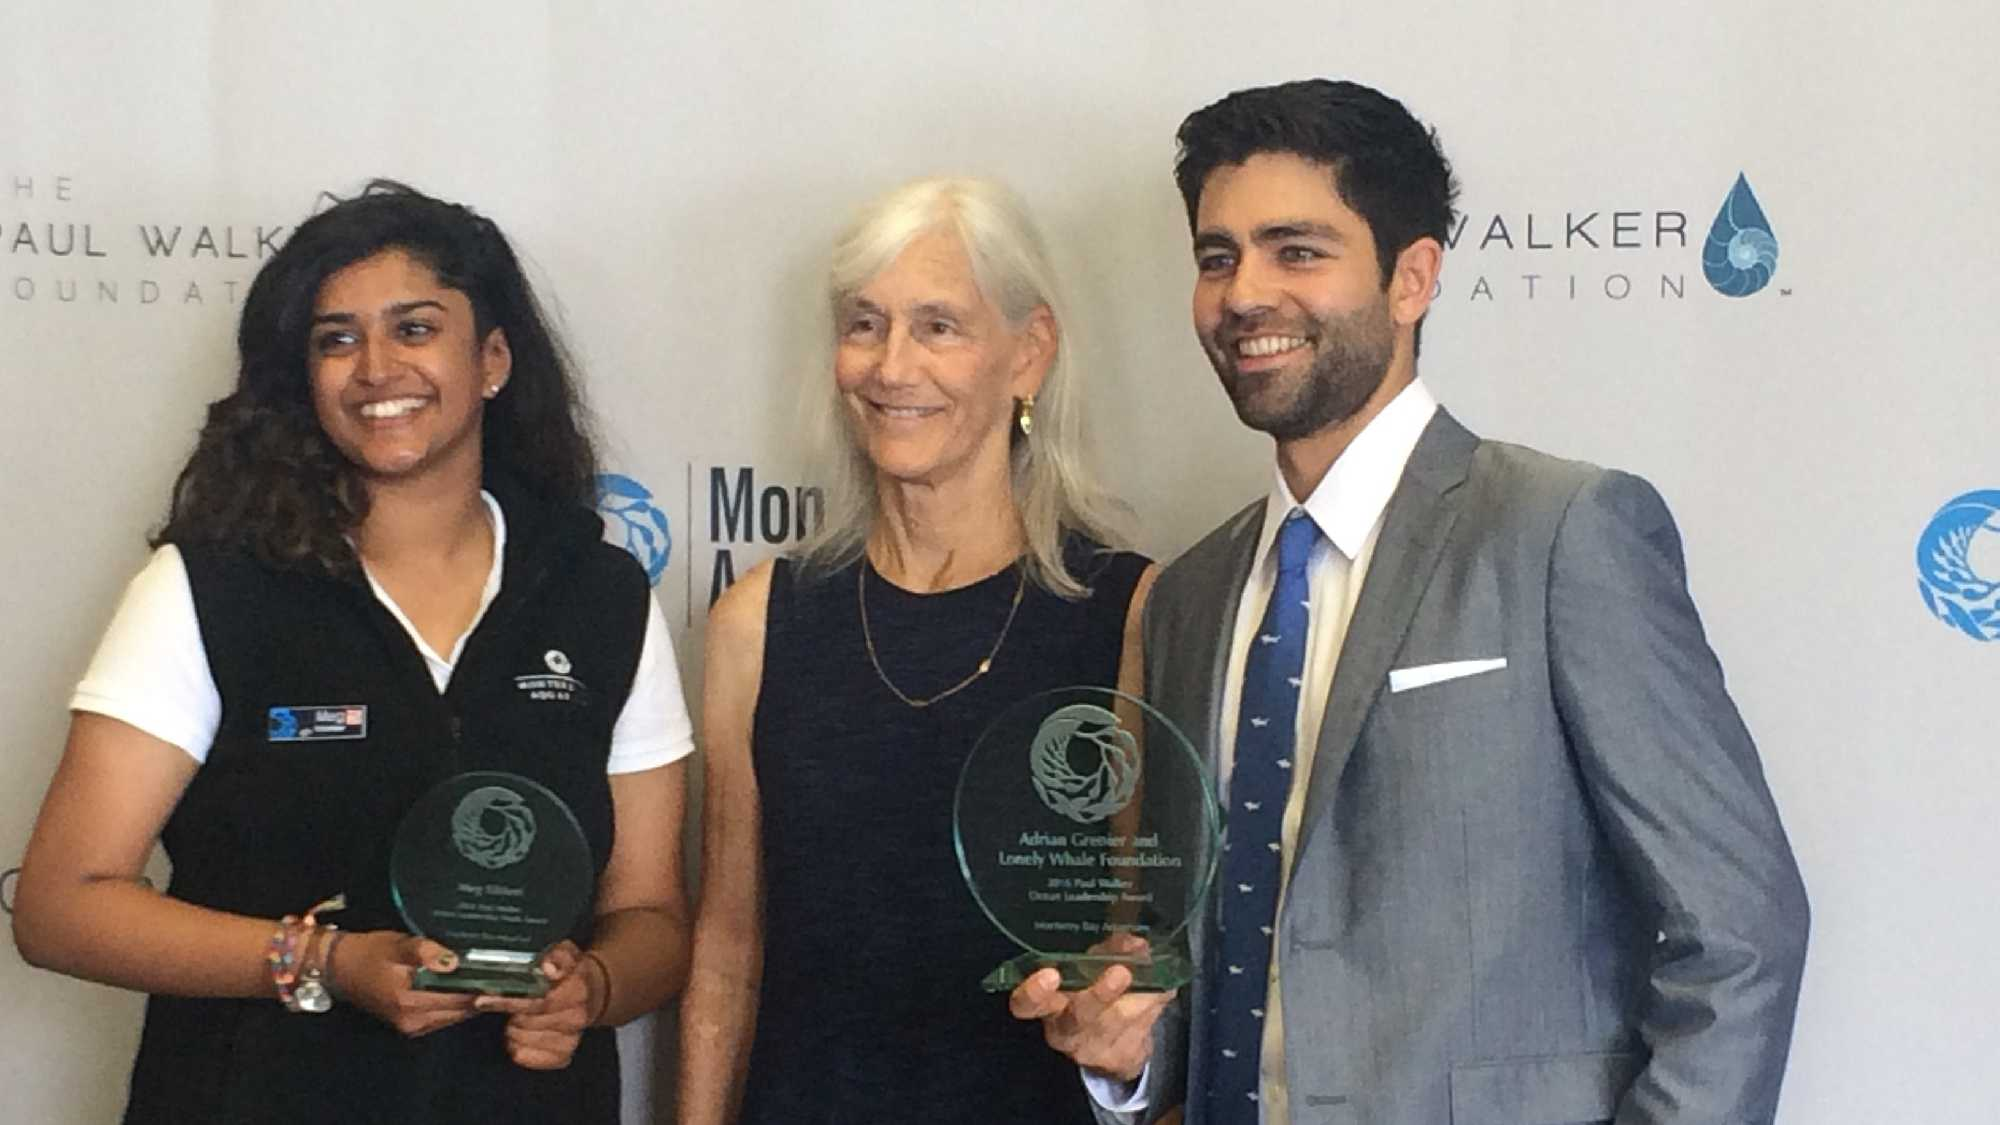 """The Monterey Bay Aquarium presented its 2016 Paul Walker Ocean Leadership Award to actor and filmmaker Adrian Grenier for his work with his foundation, """"The Lonely Whale."""" The aquarium also presented the Paul Walker Youth Award to Meg Kikkeri of Cupertino."""